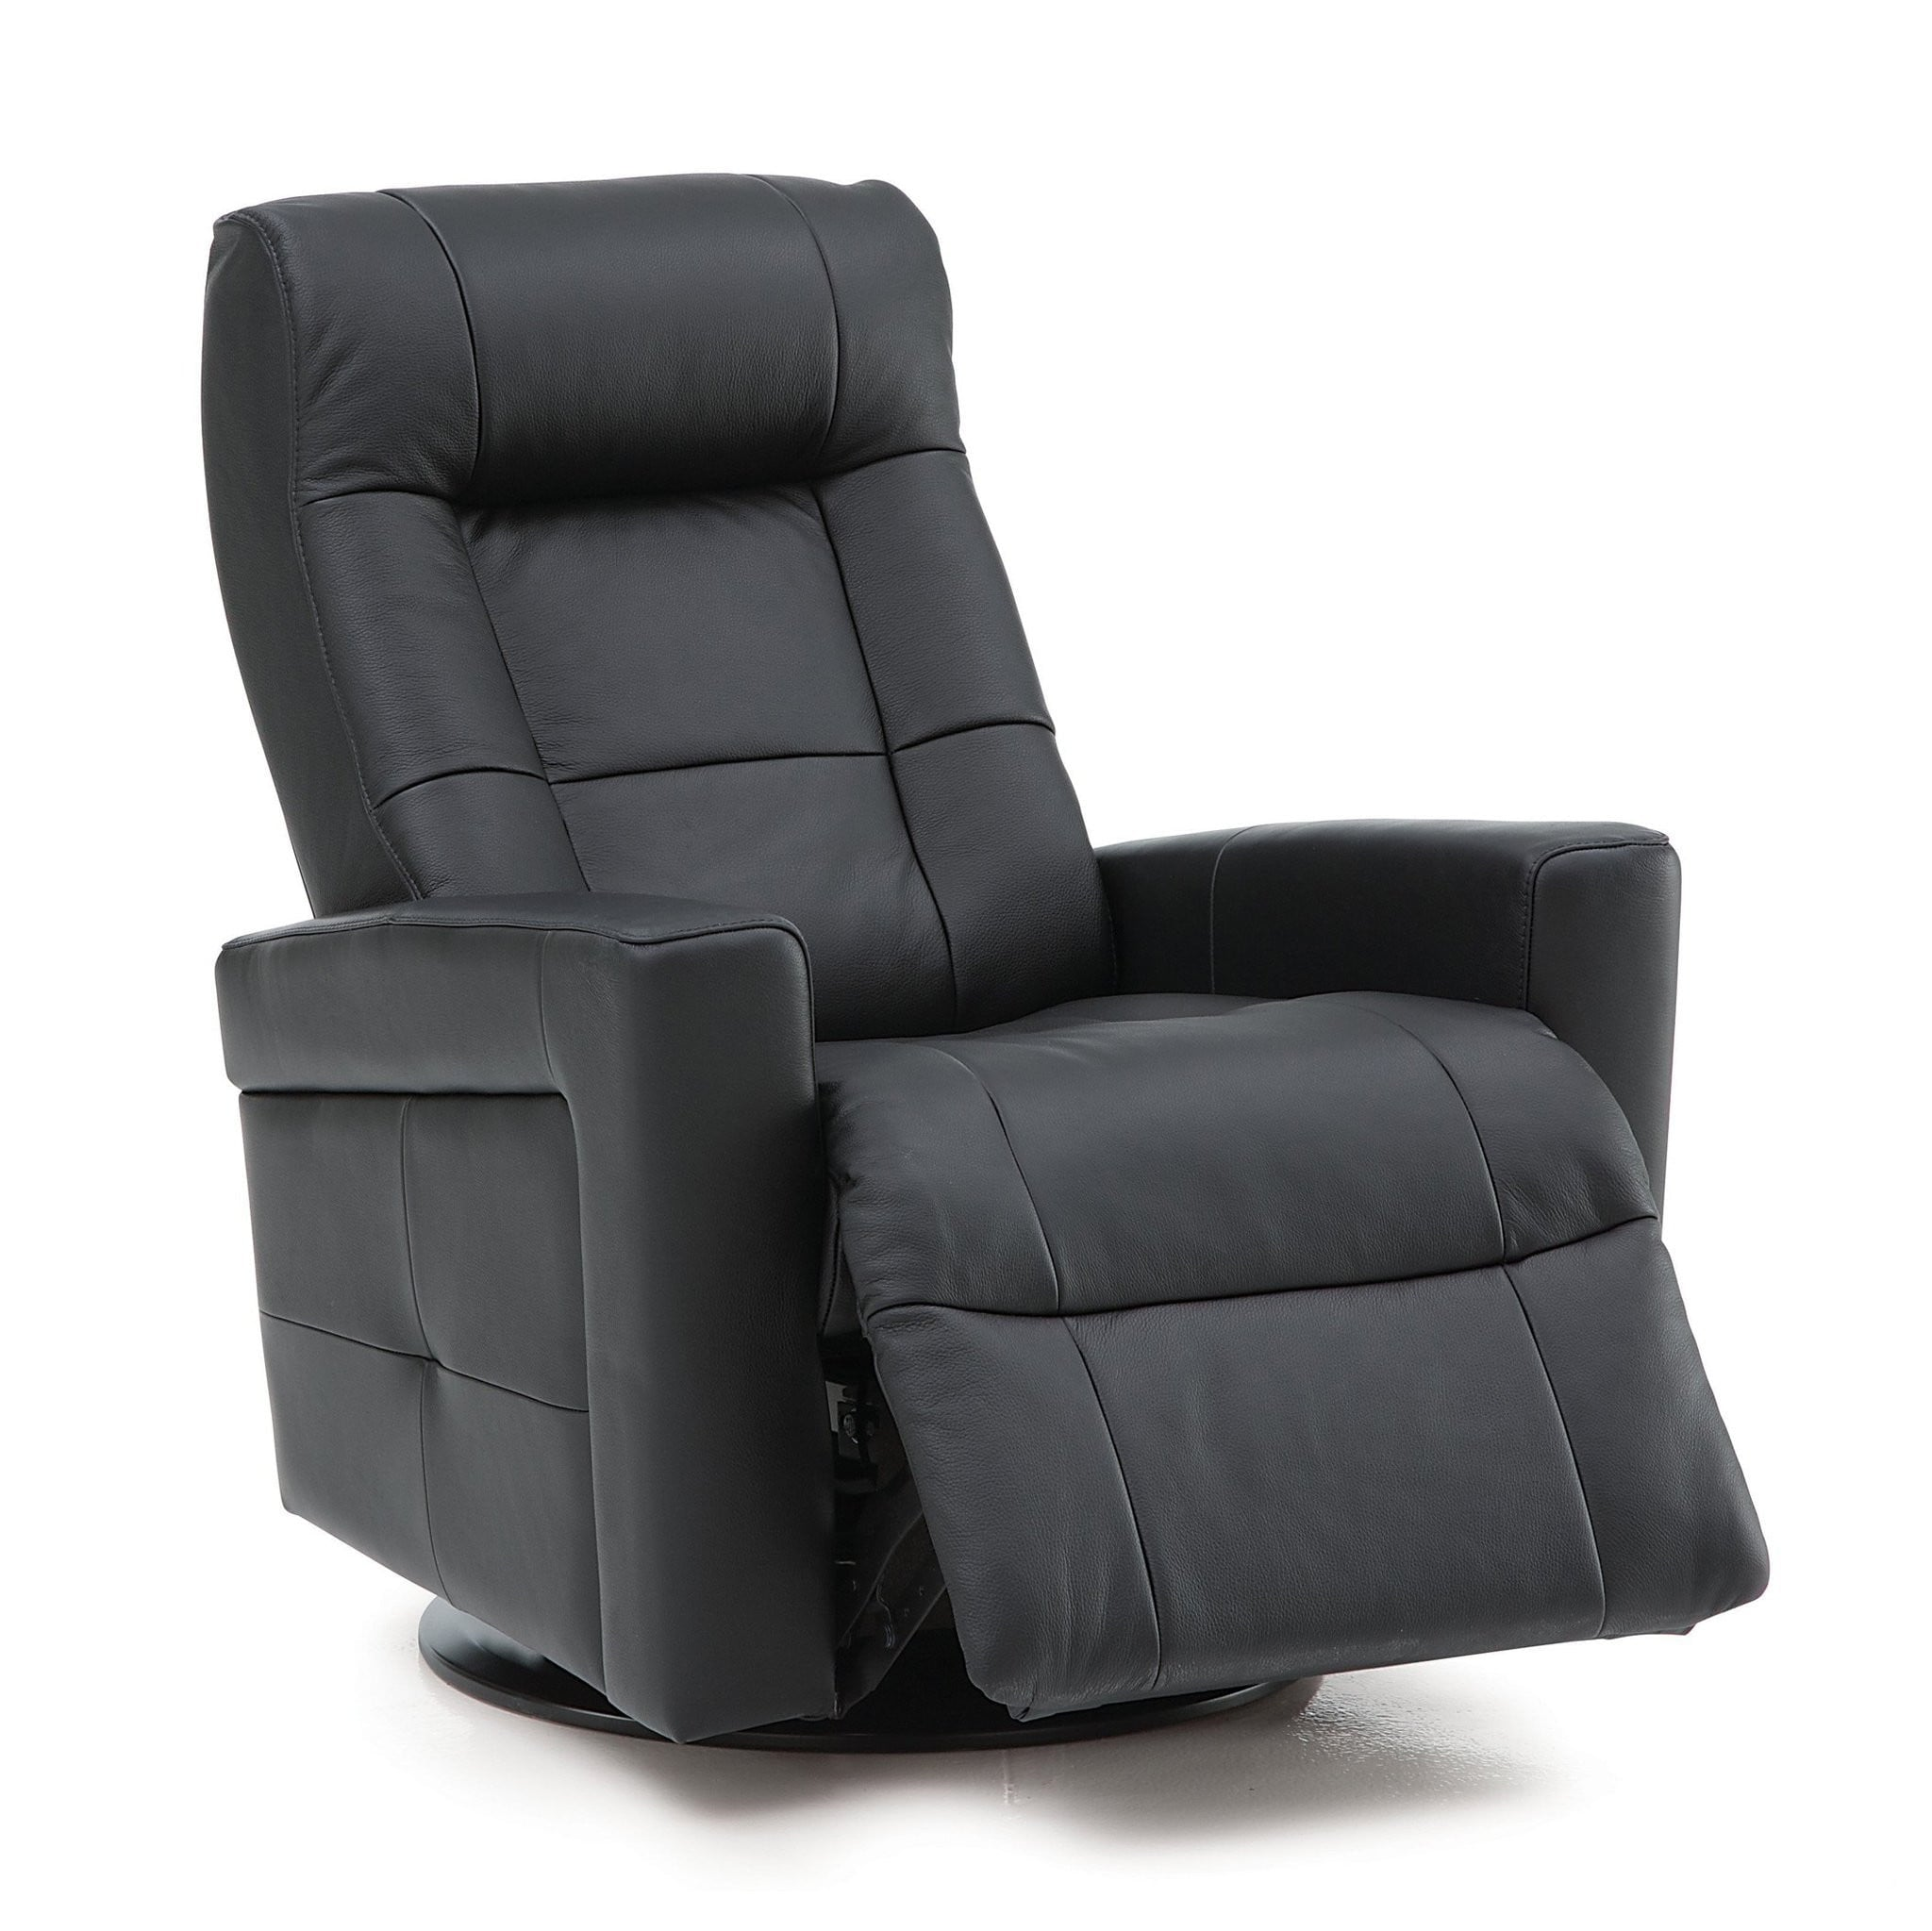 Cheasapeake II Recliner Chair - sofacreations